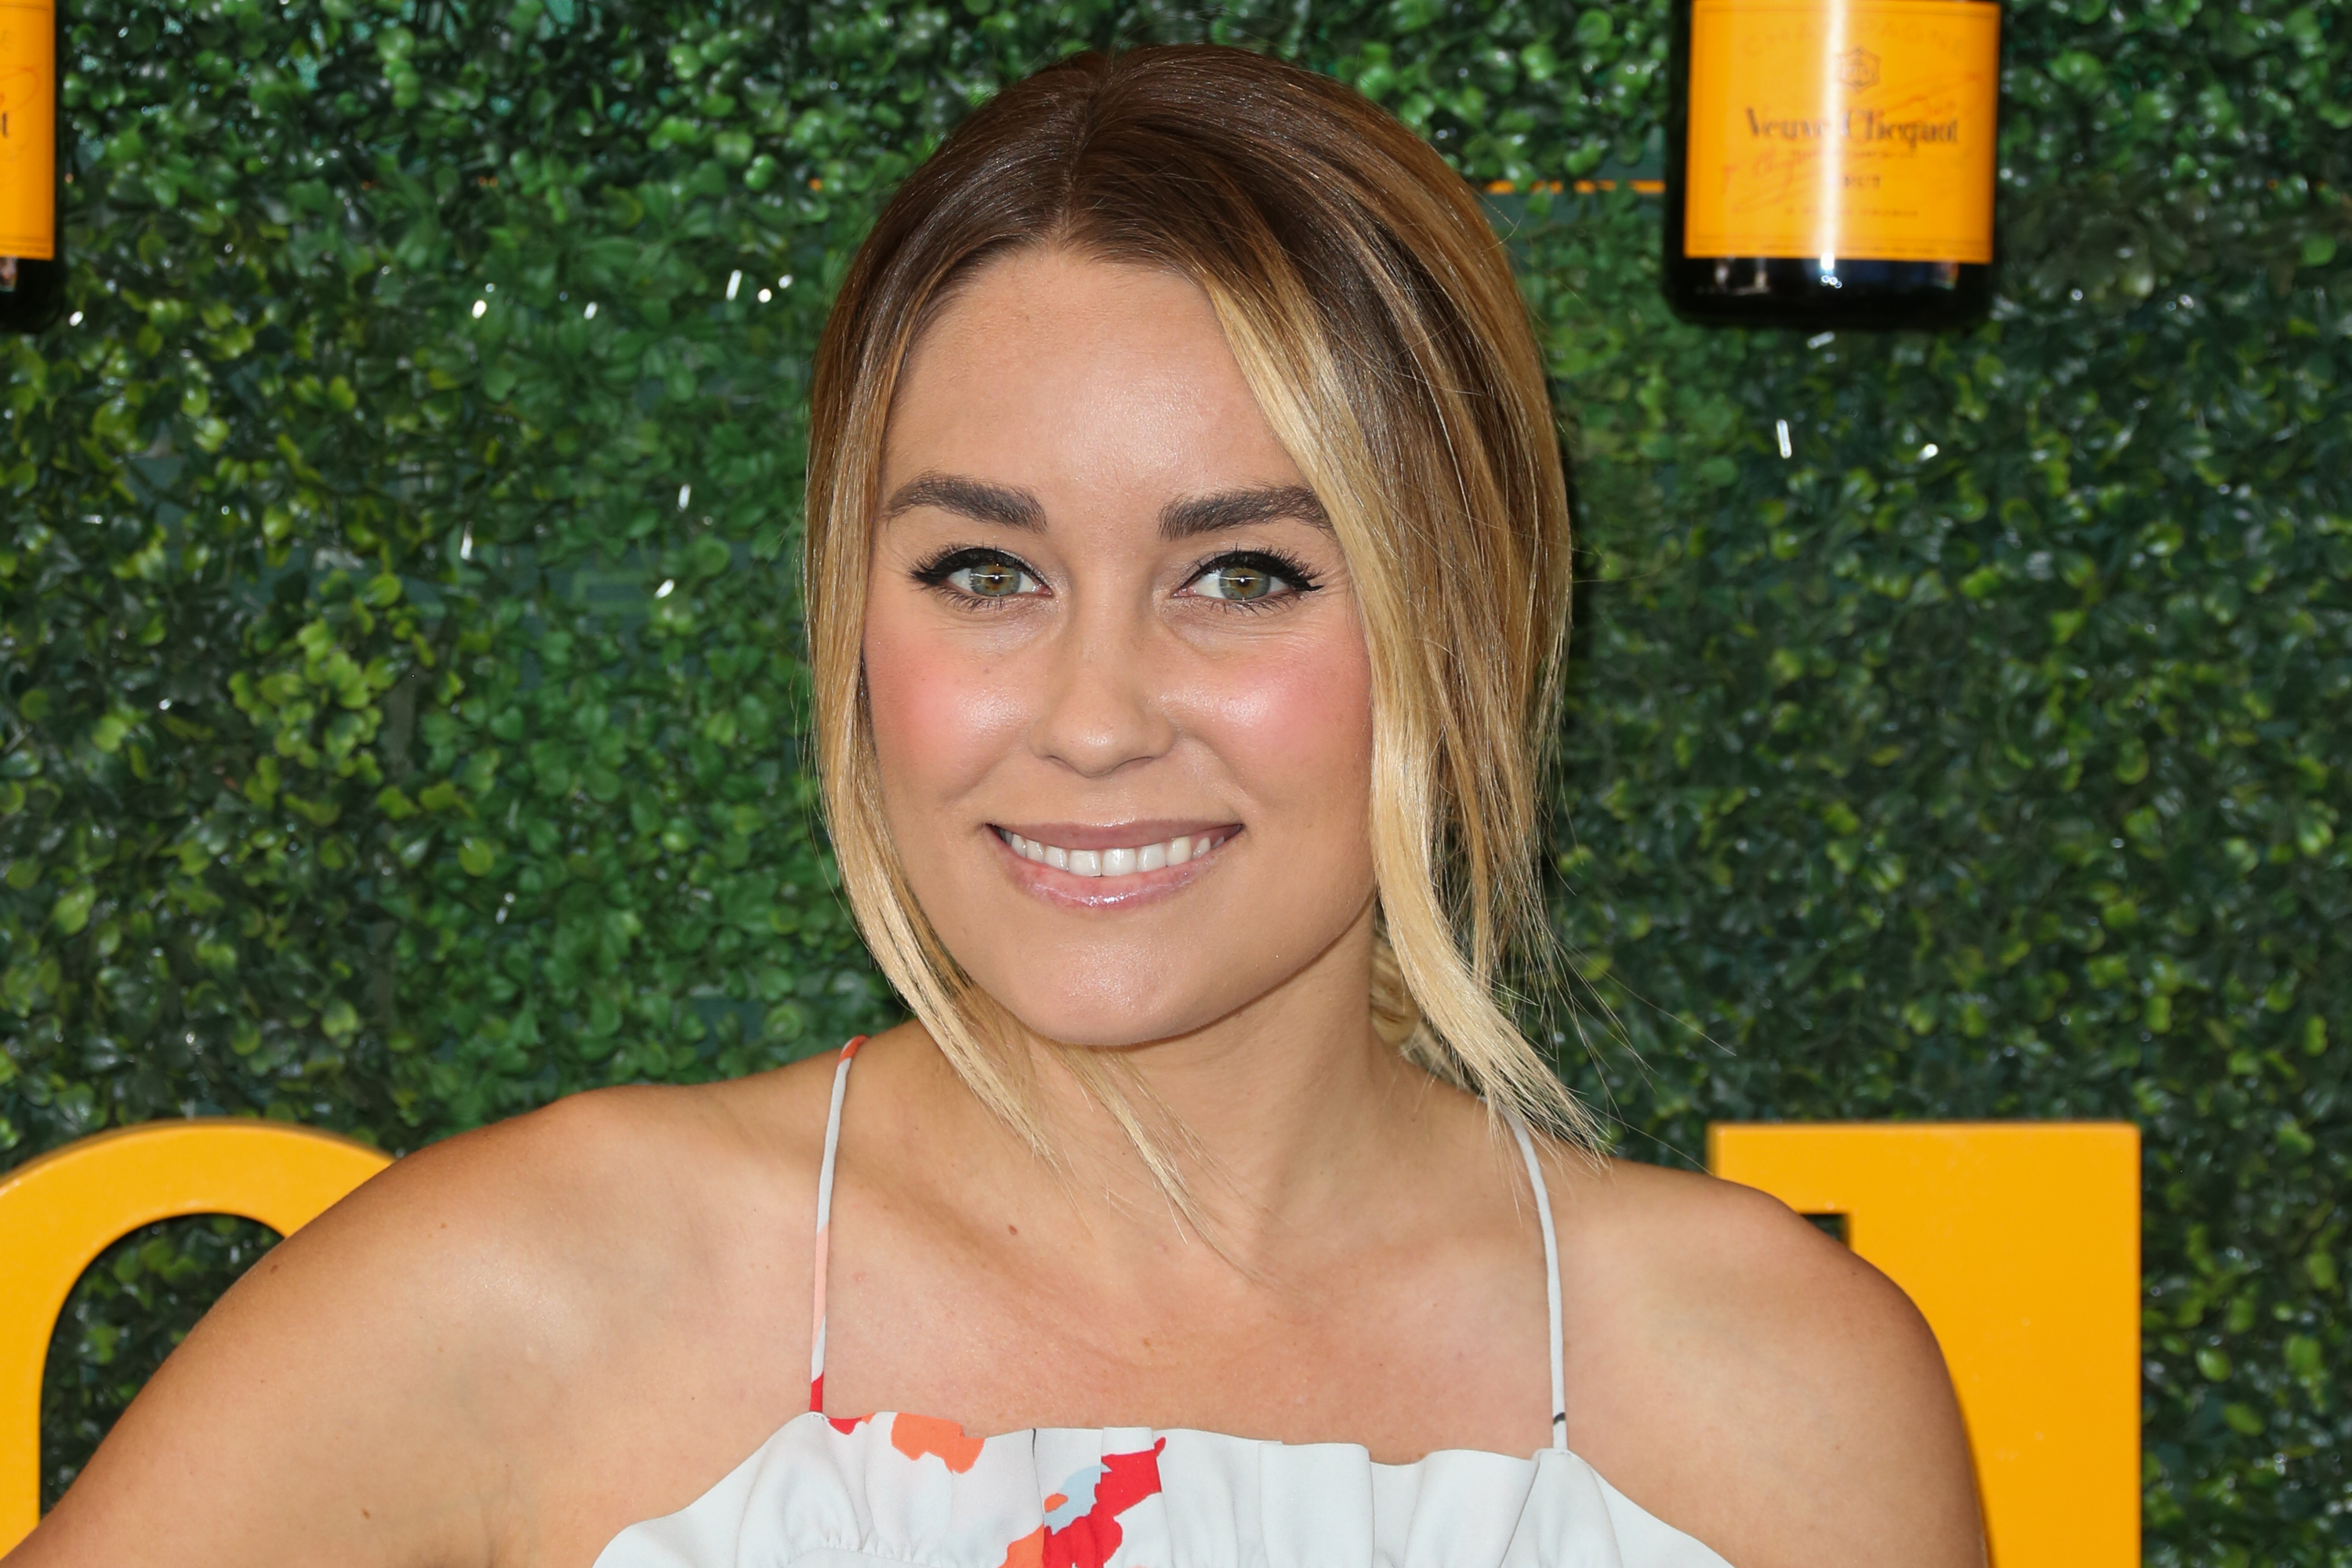 Lauren Conrad just announced she's pregnant on Instagram and we are SO happy